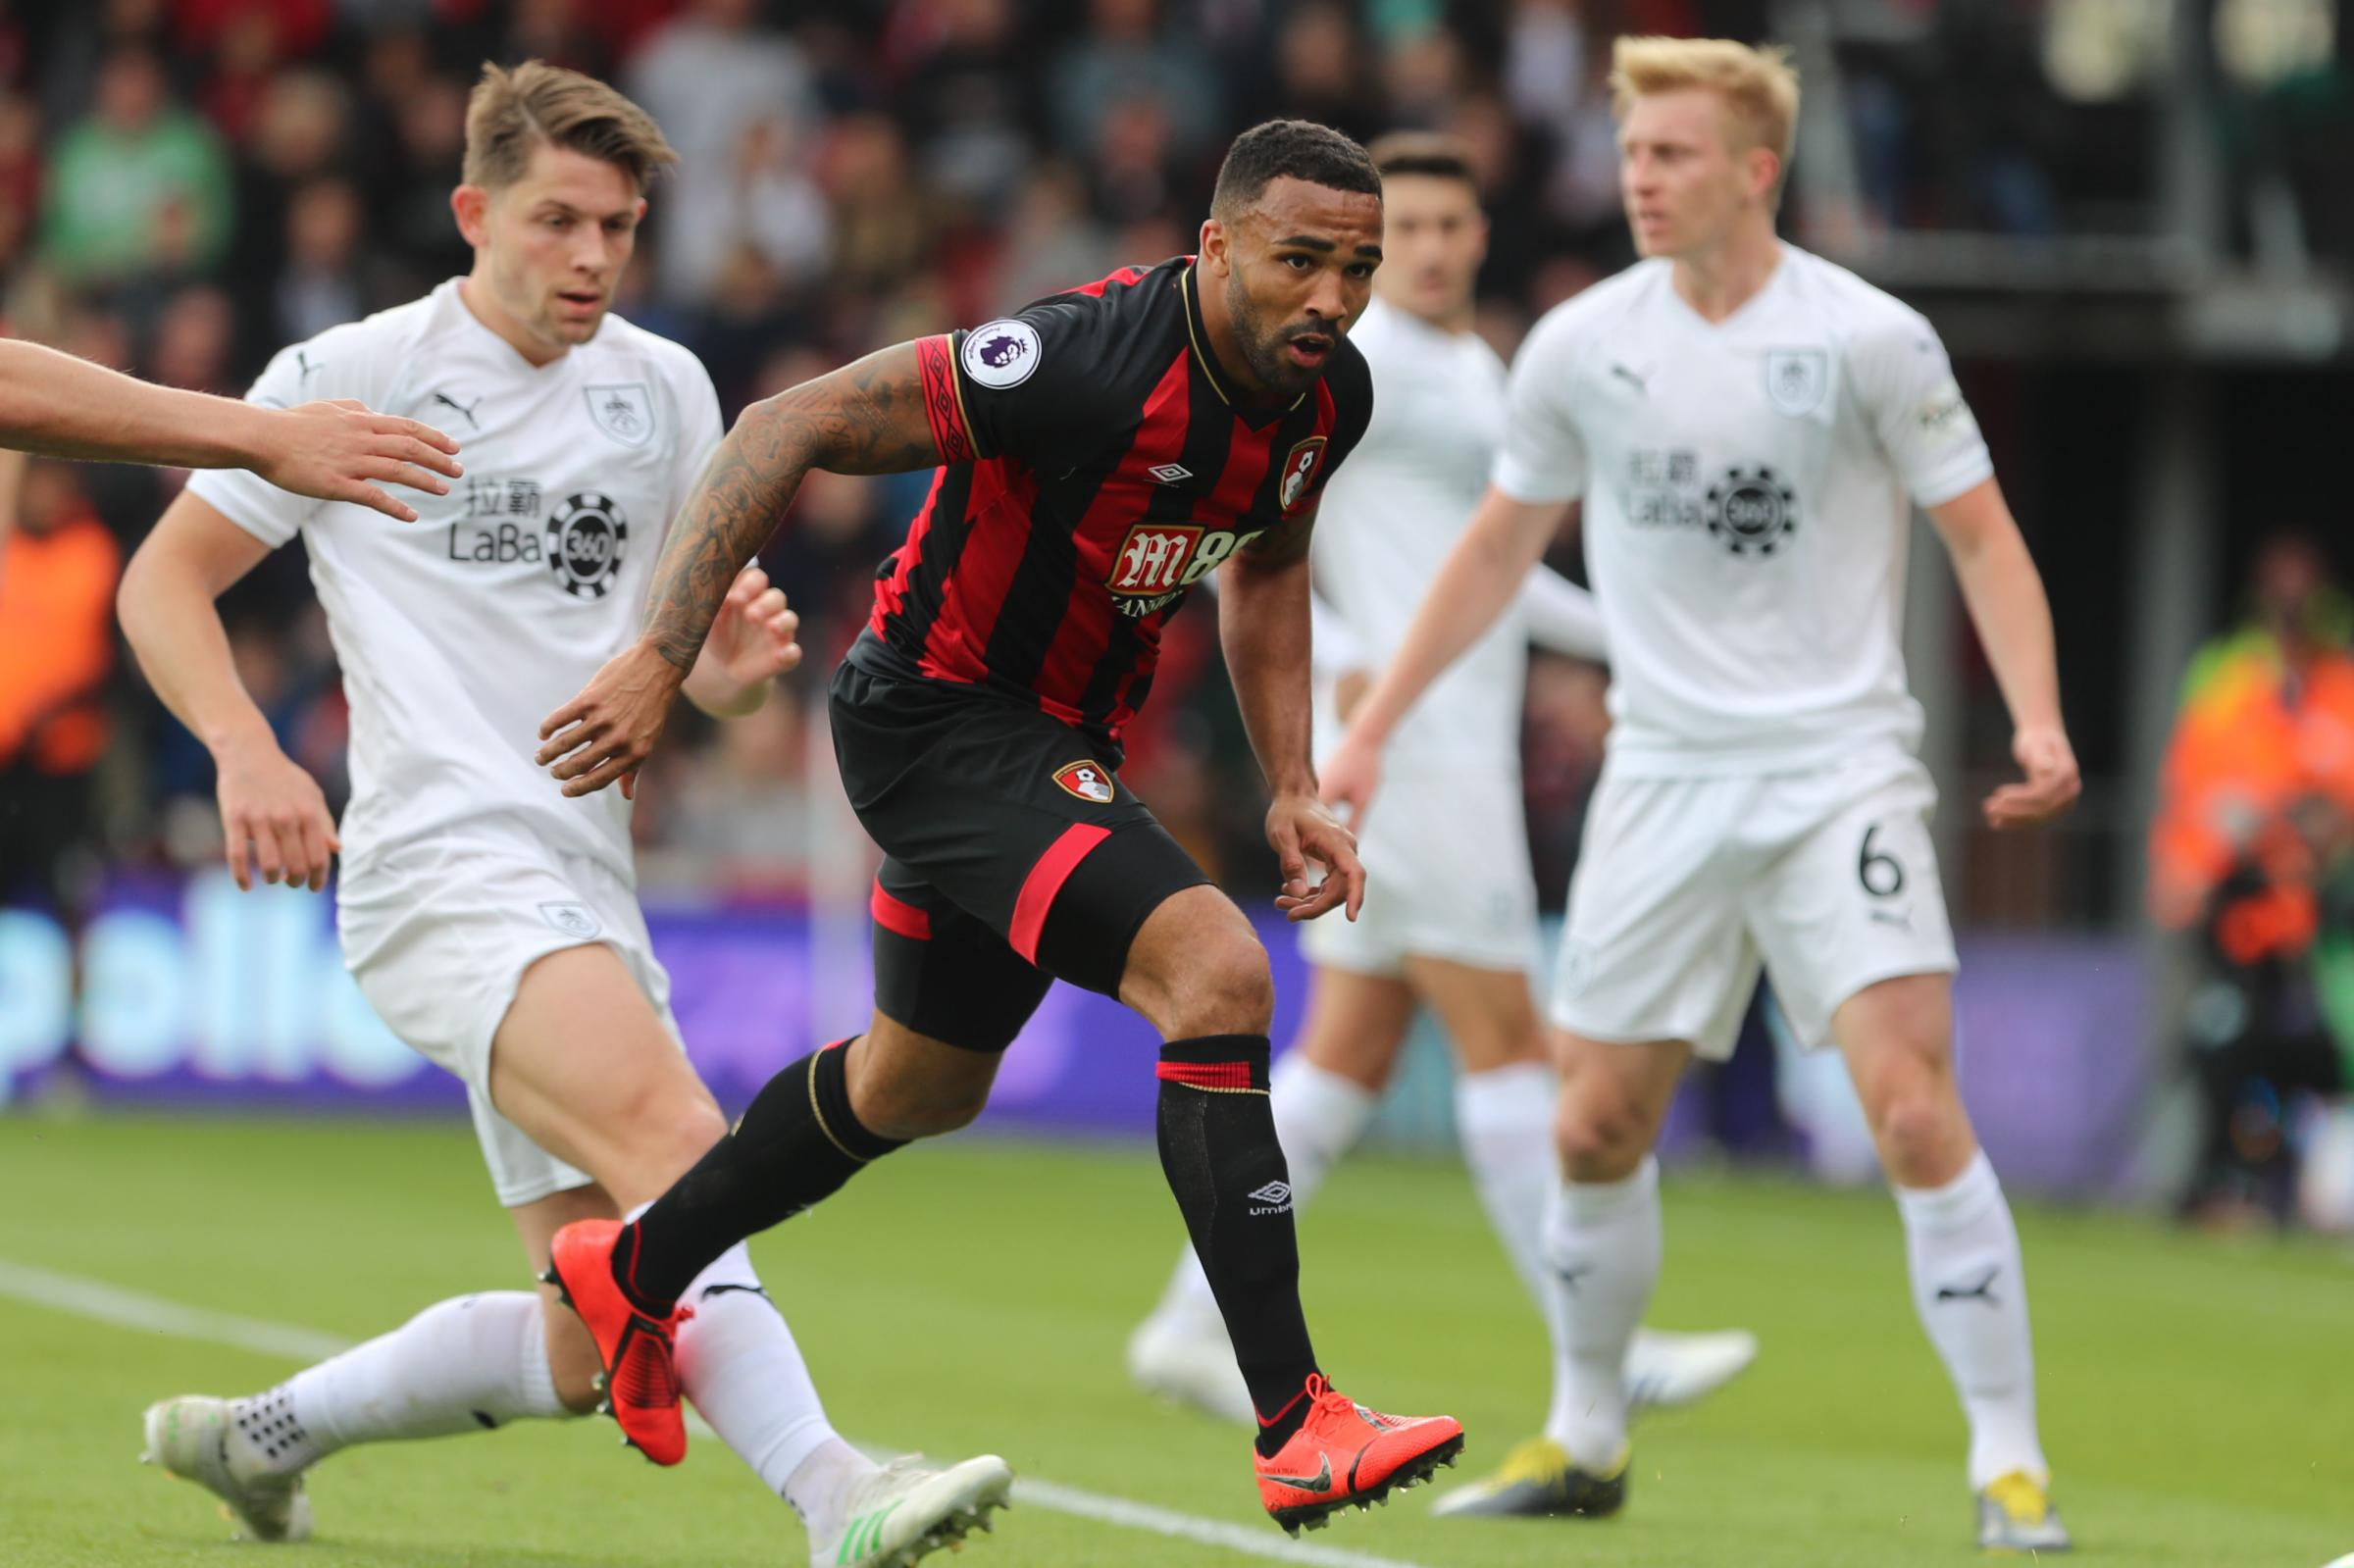 Report claims AFC Bournemouth are set to offer new five-year contract to Callum Wilson